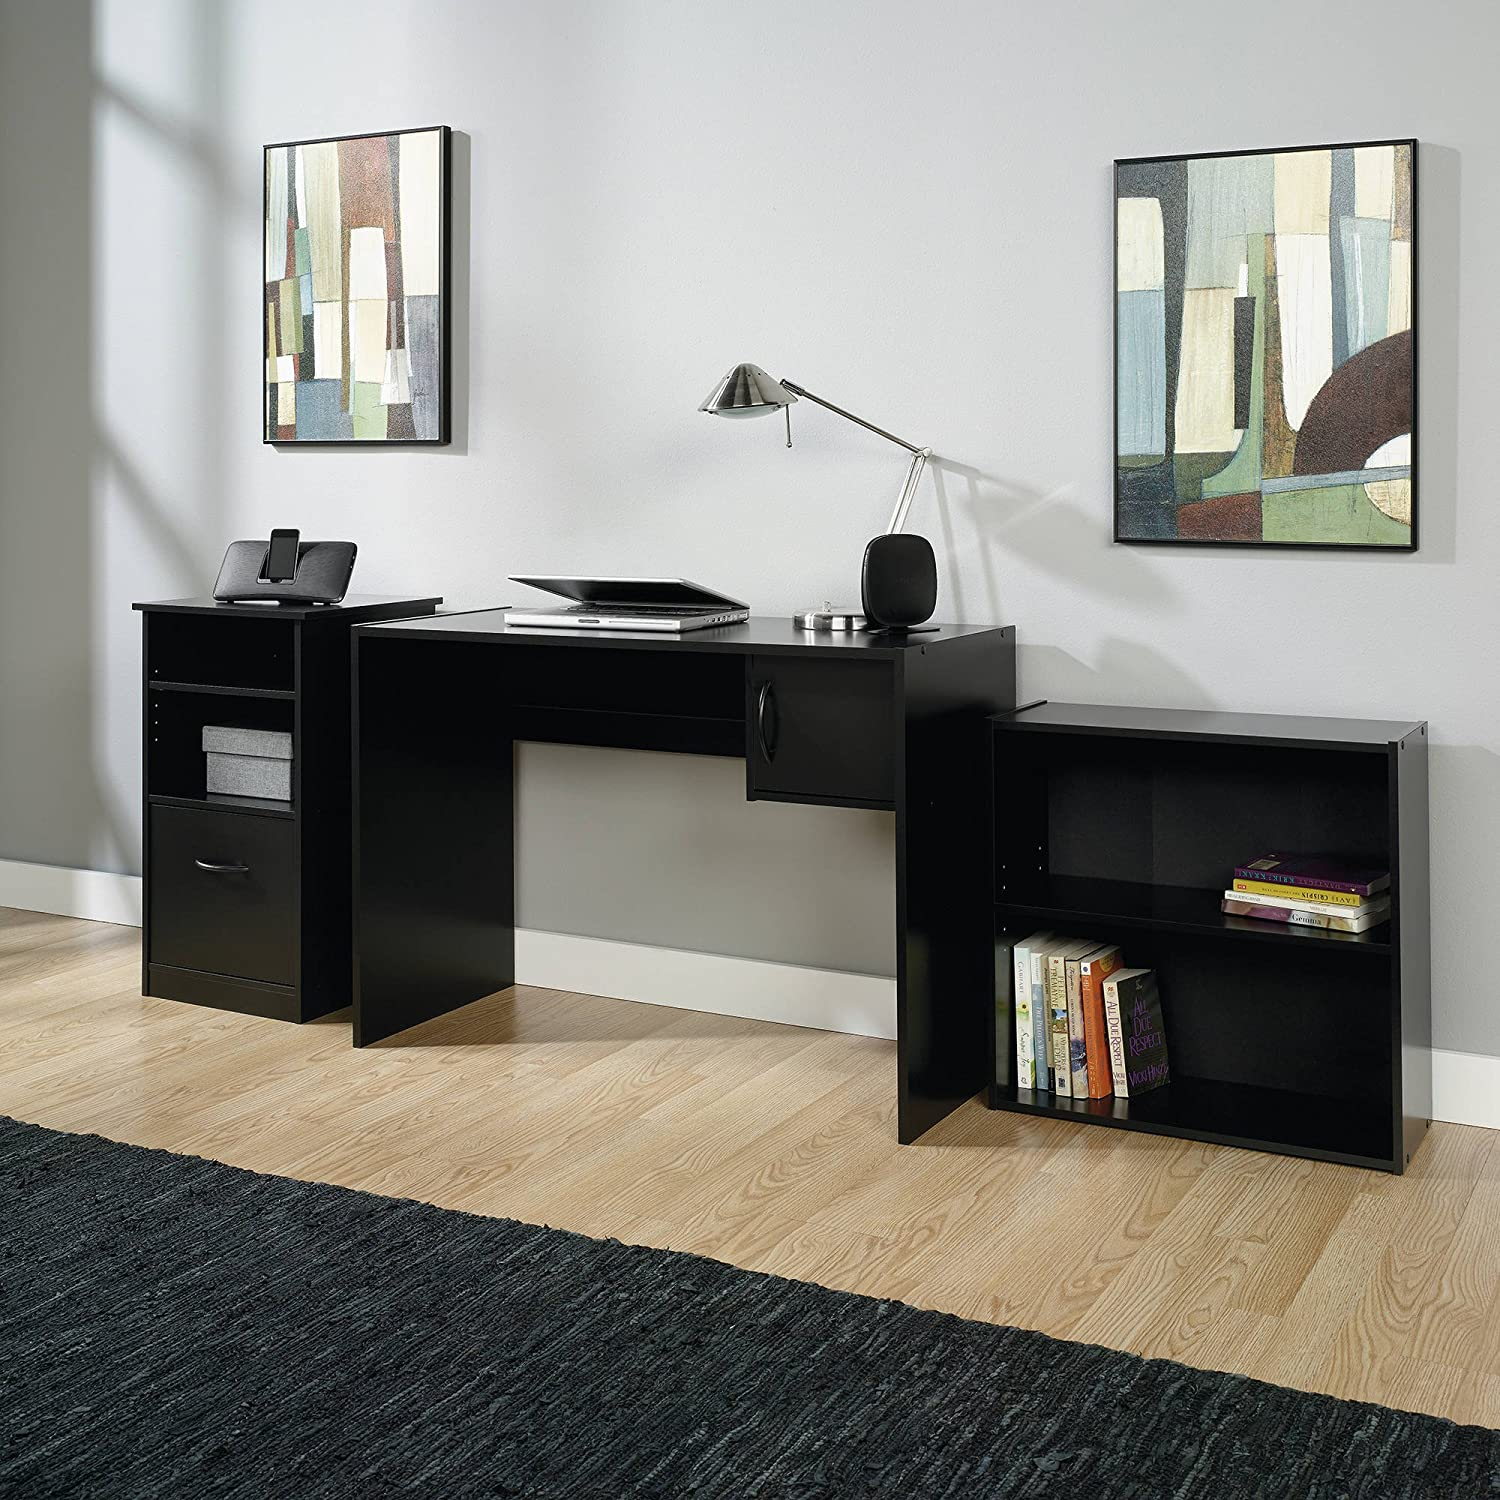 31-Piece Executive Furniture Office Set, Matching Bookcase, Desk and Cabinet  with an Elegant Black Finish, Classic Workstation Design Perfect for